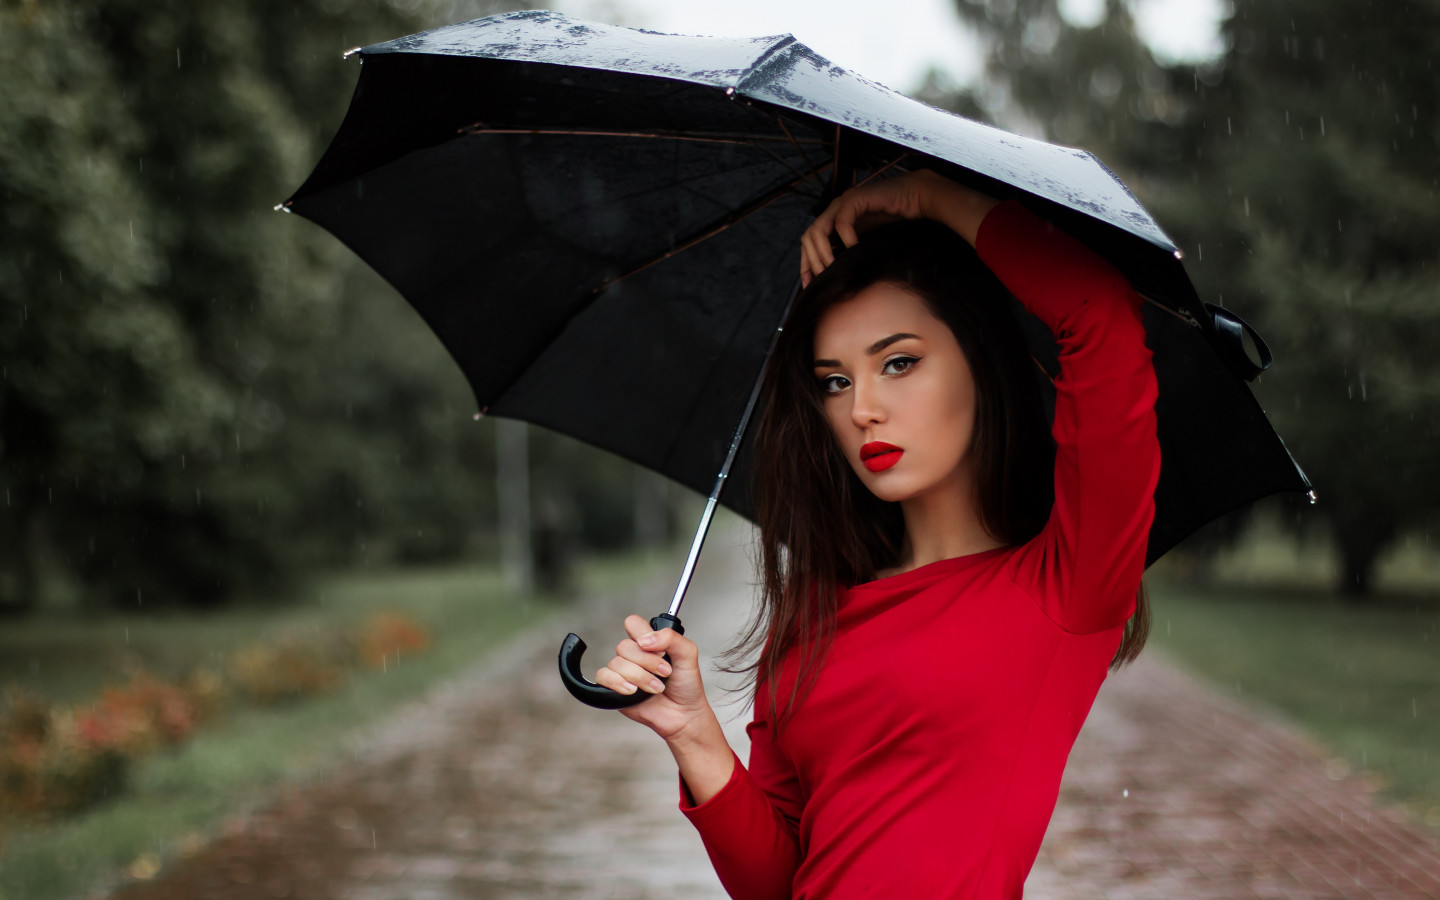 Beauitful girl in a rainy day | 1440x900 wallpaper